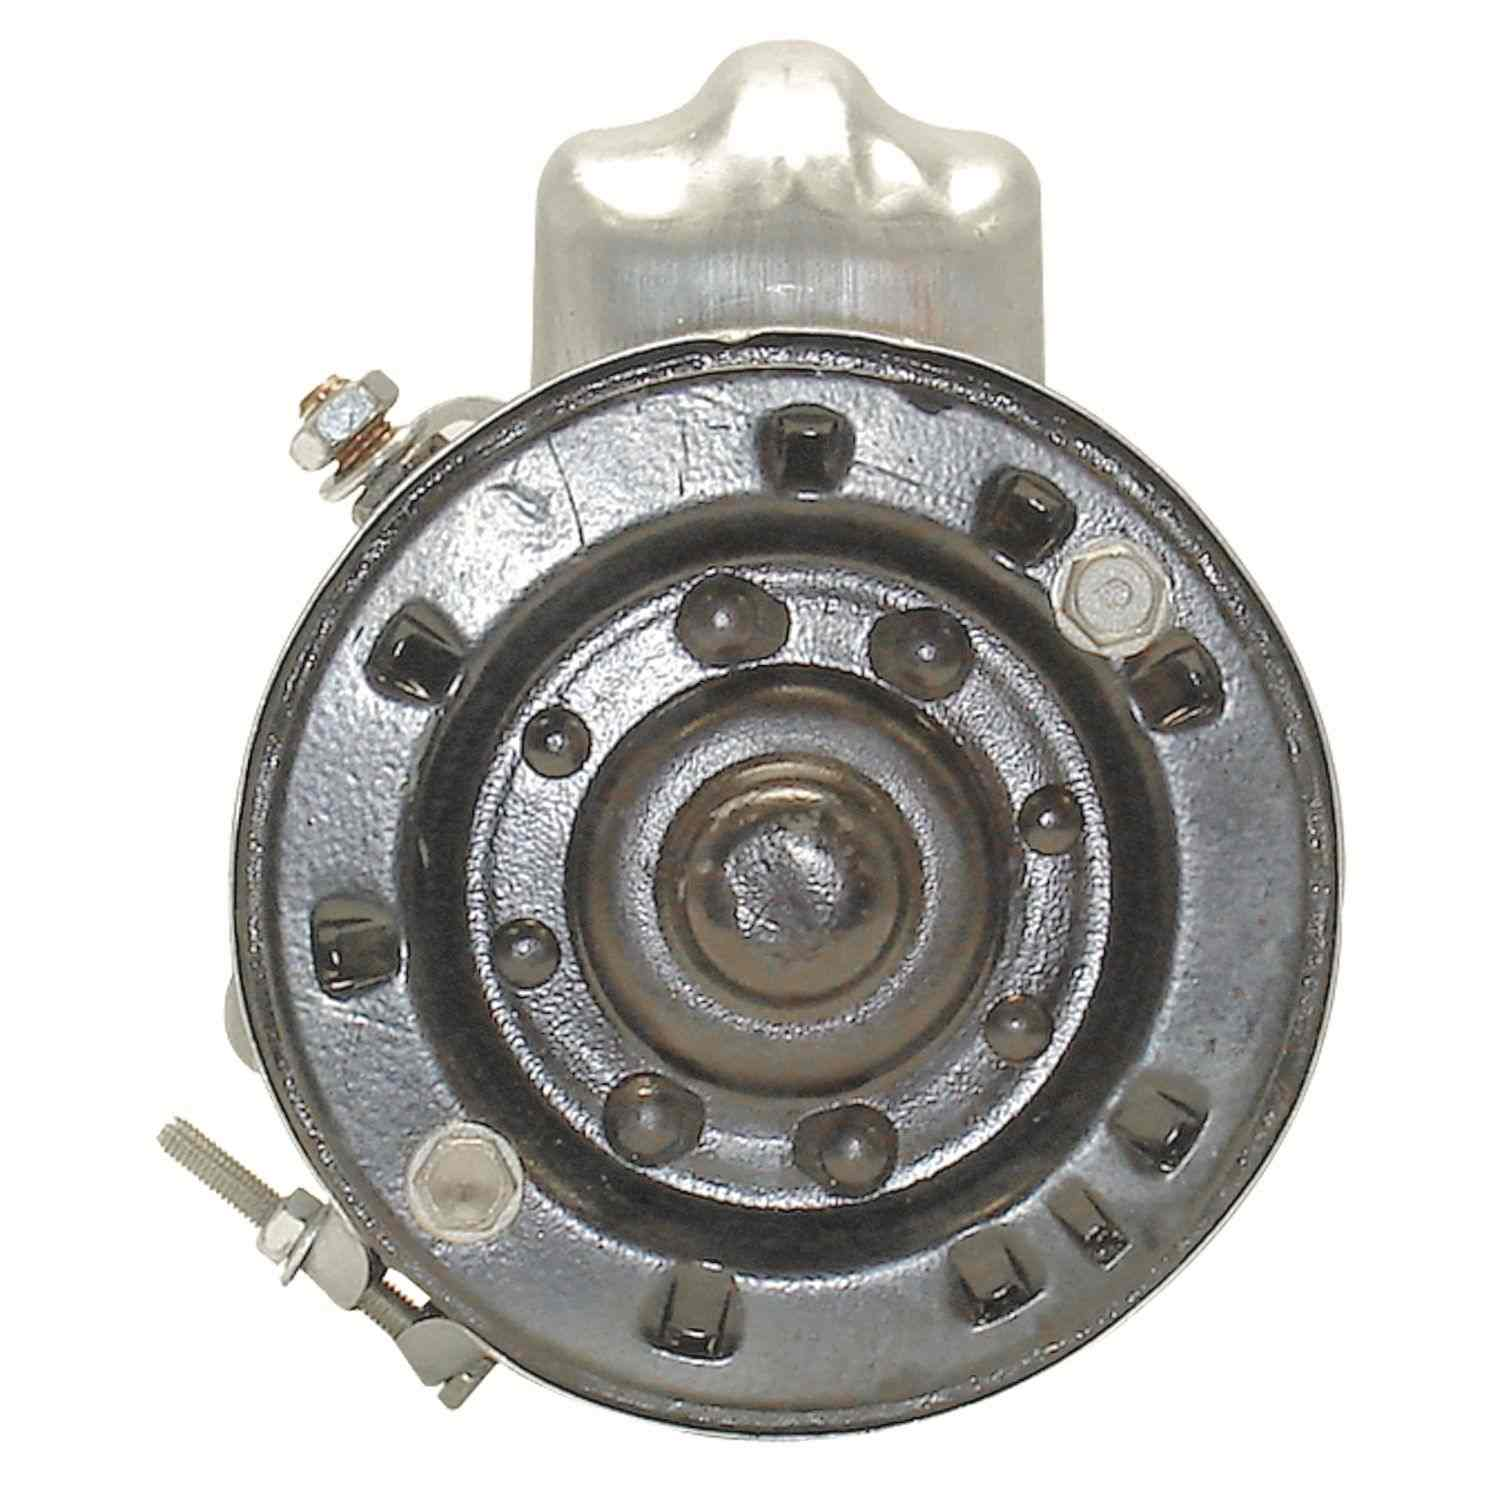 ACDELCO PROFESSIONAL - Reman Starter Motor - DCC 336-1007